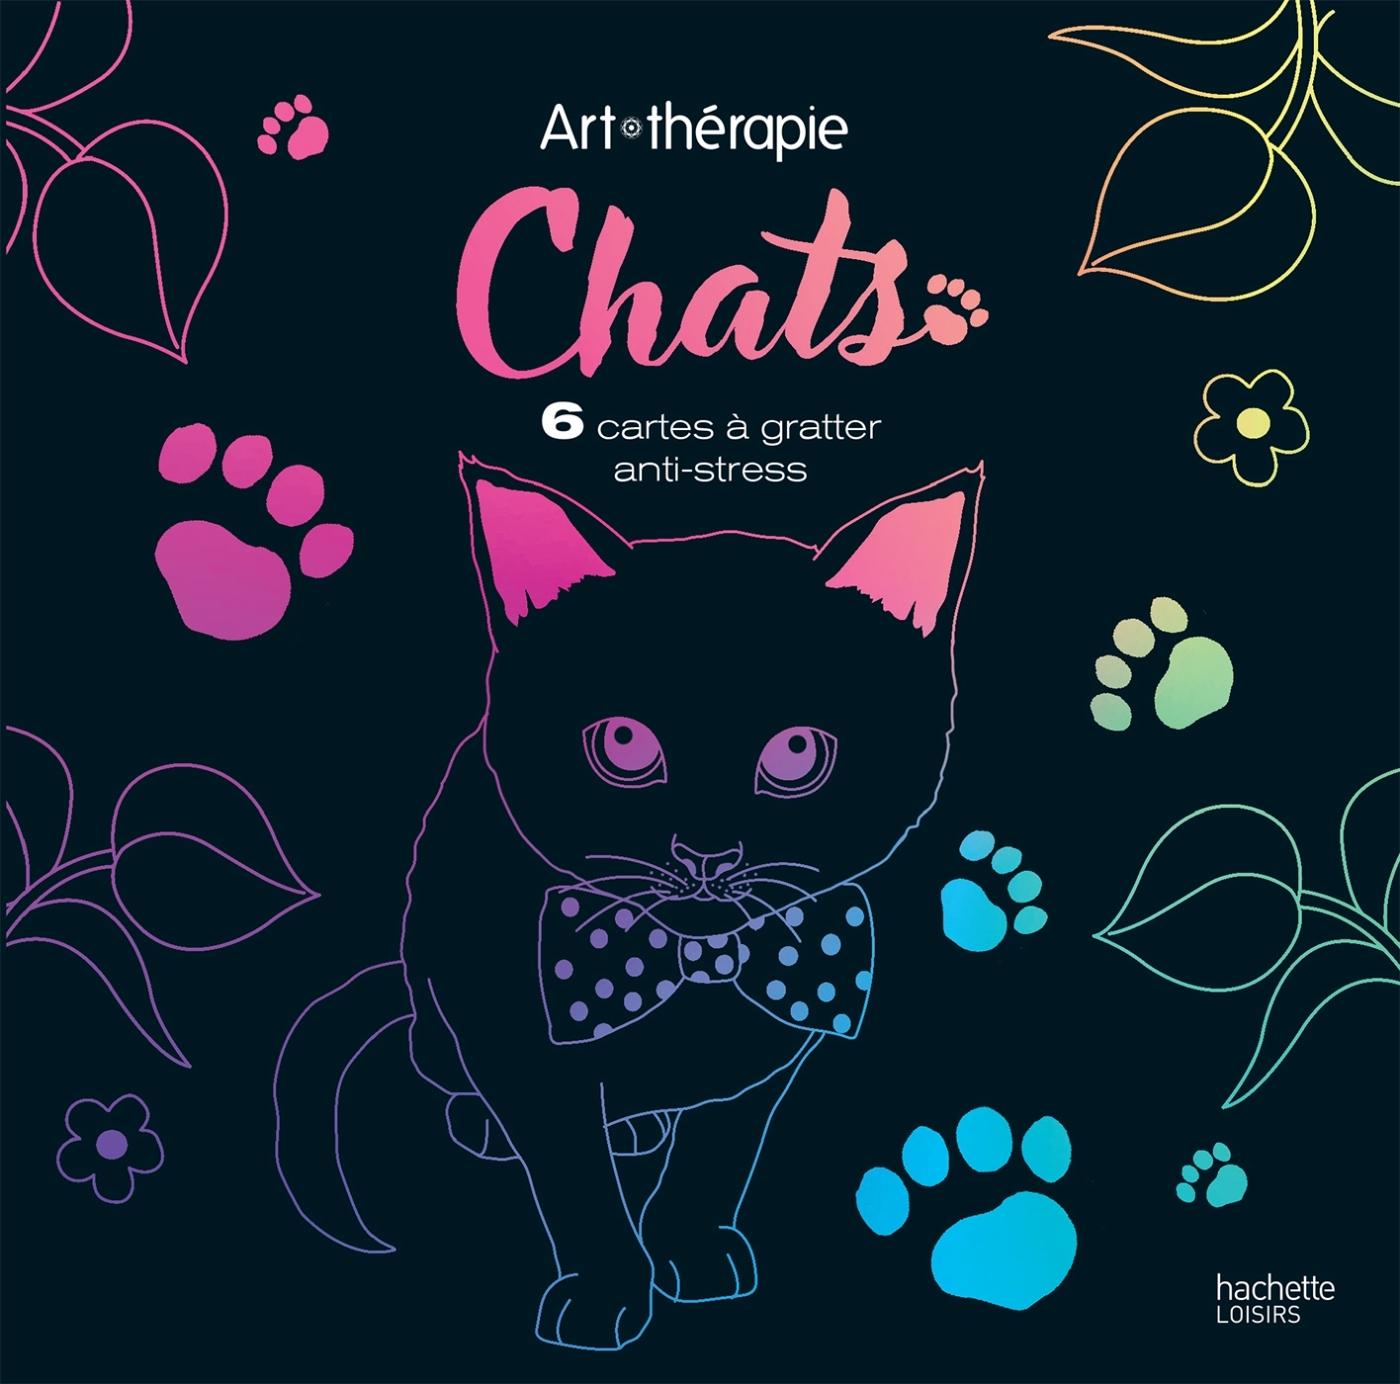 CHATS - 6 CARTES A GRATTER ANTI-STRESS